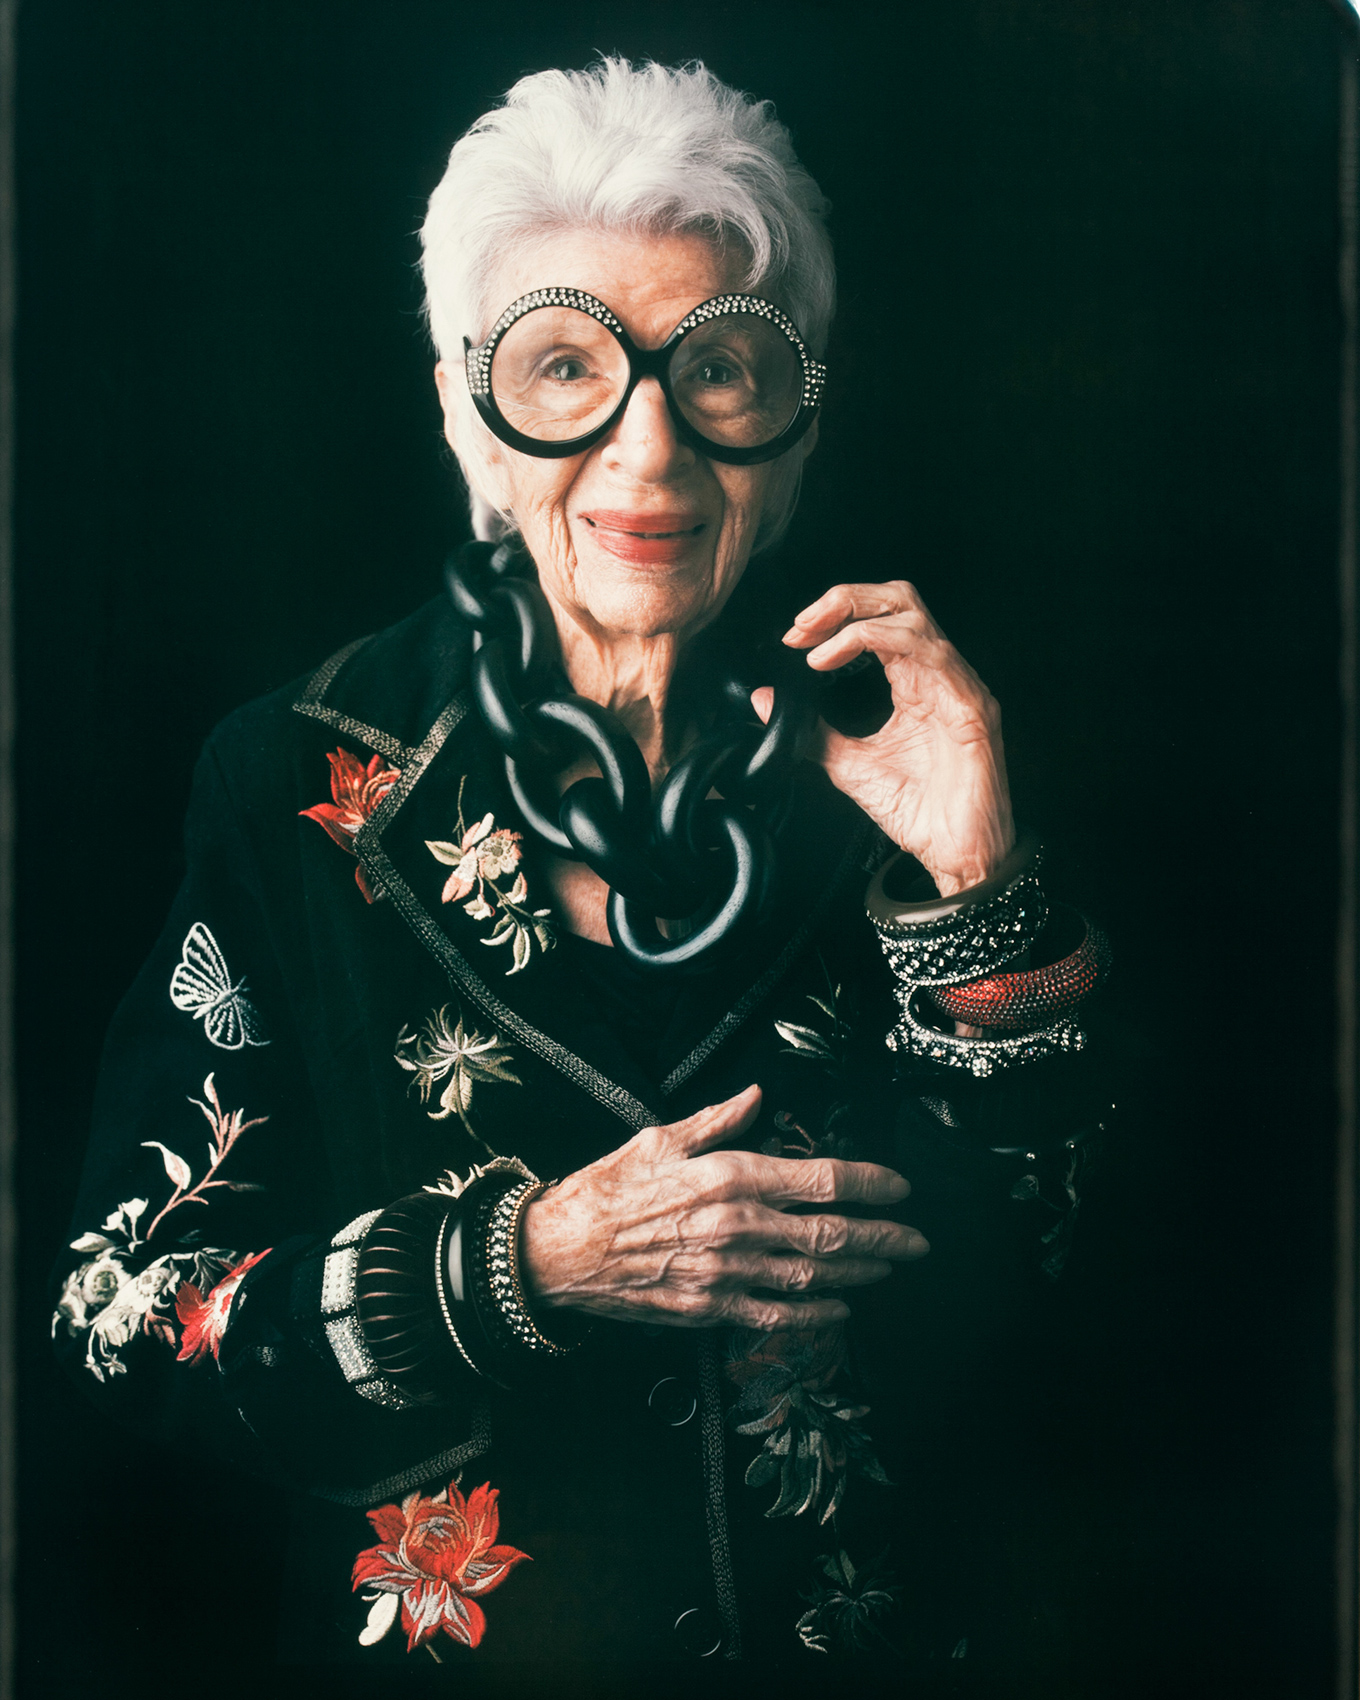 PPL-IrisApfel-1-2014-added2020